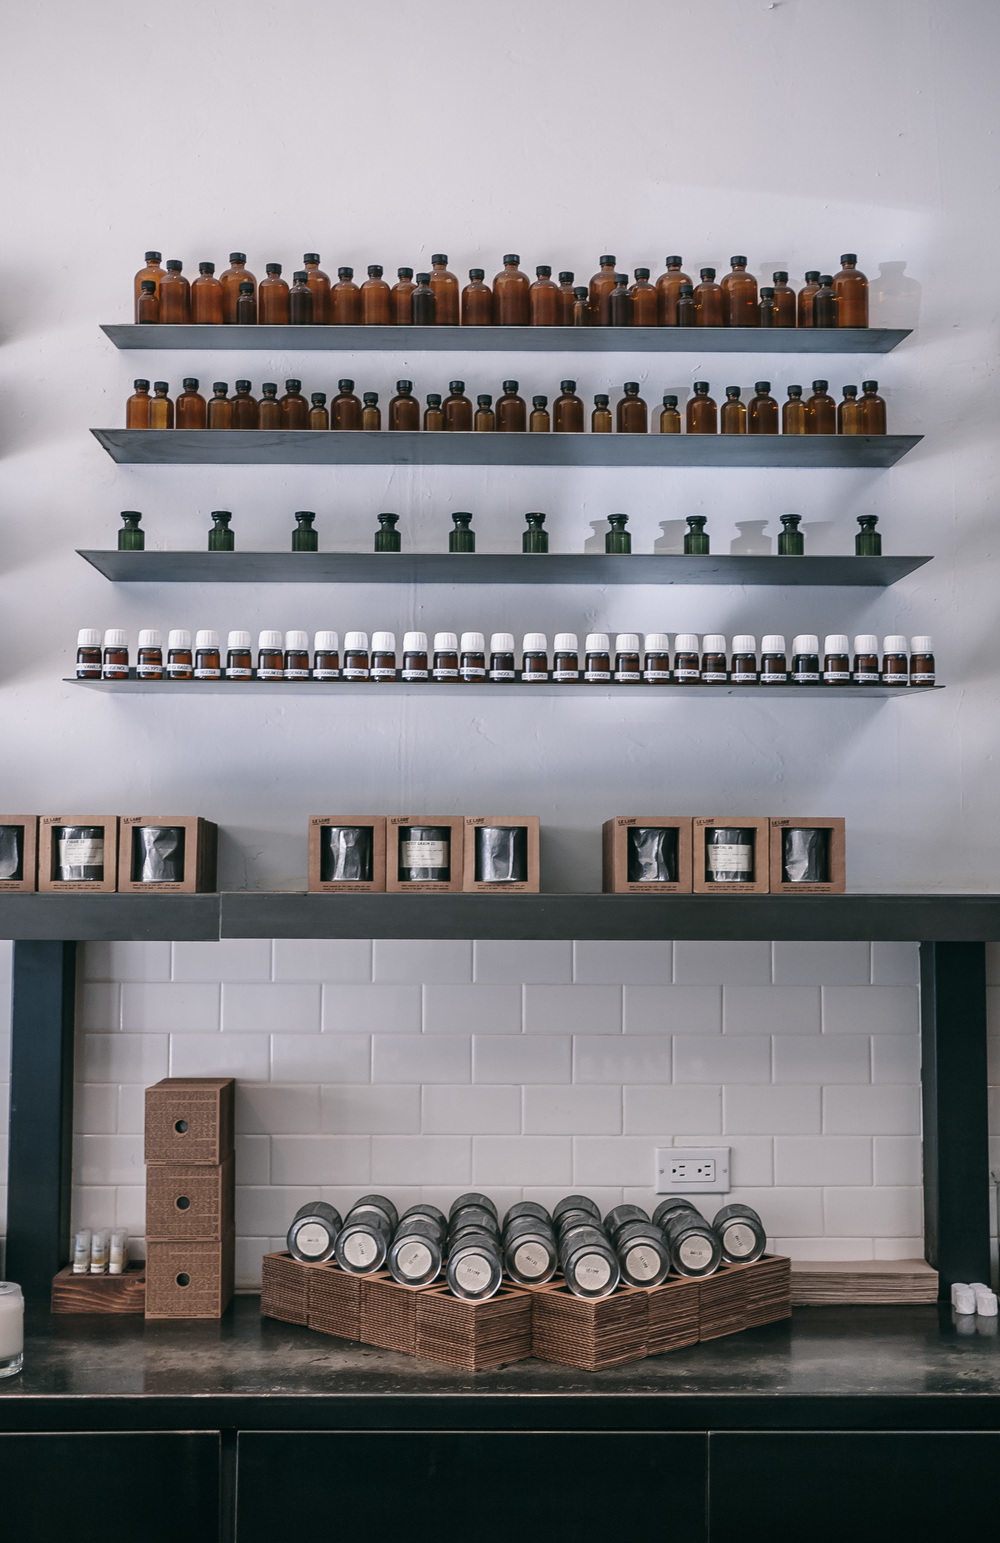 The ingredient wall at Le Labo | 3rd Street, Los Angeles